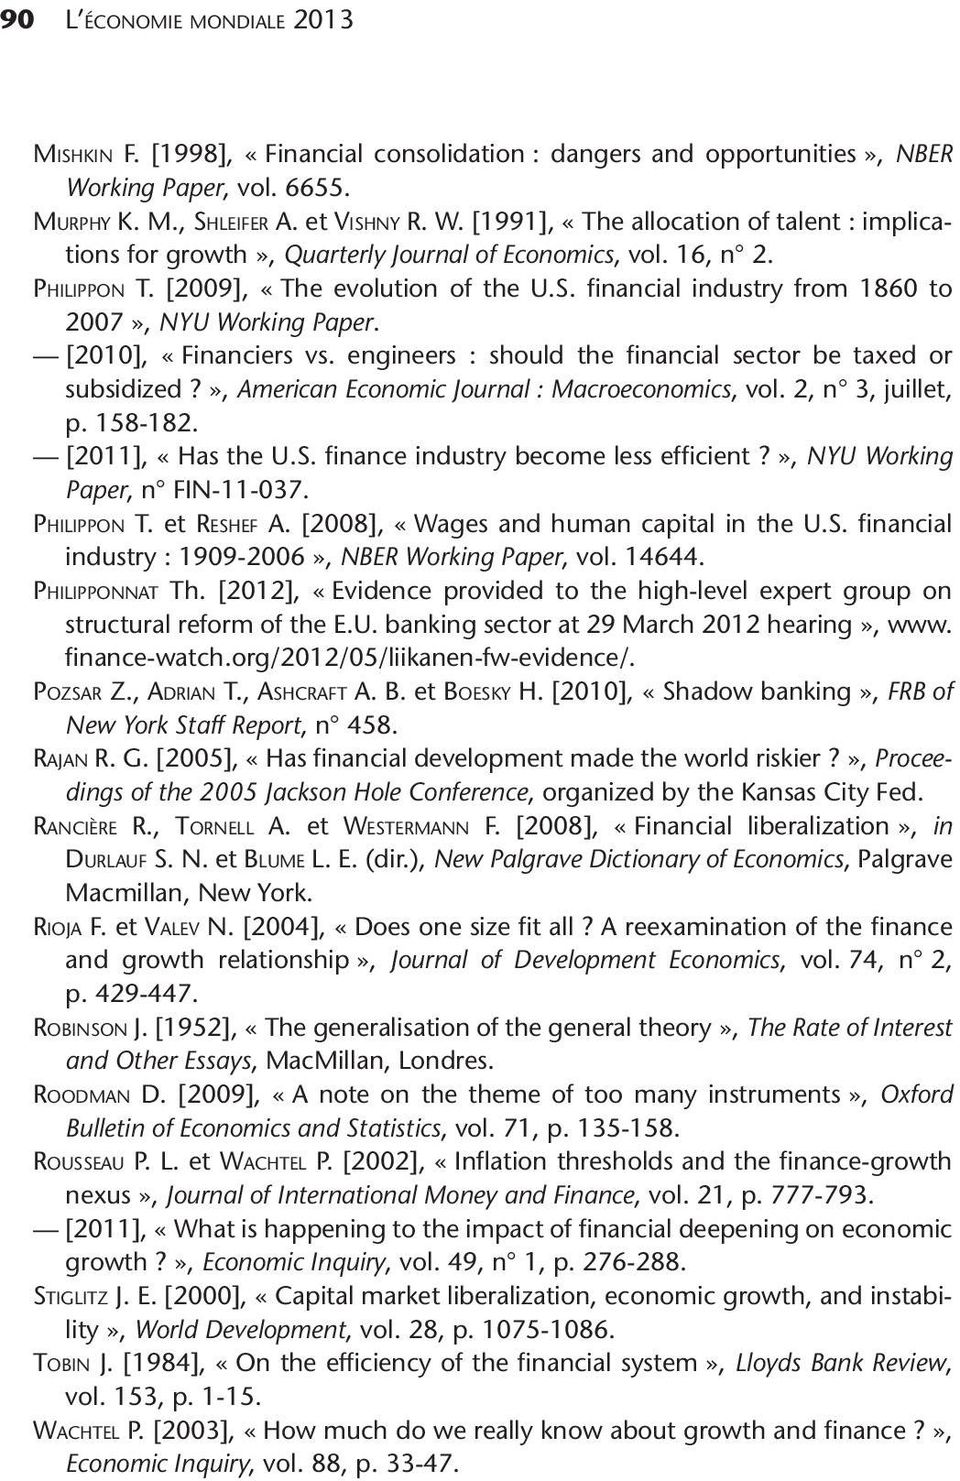 [2009], «The evolution of the U.S. financial industry from 1860 to 2007», NYU Working Paper. [2010], «Financiers vs. engineers : should the financial sector be taxed or subsidized?